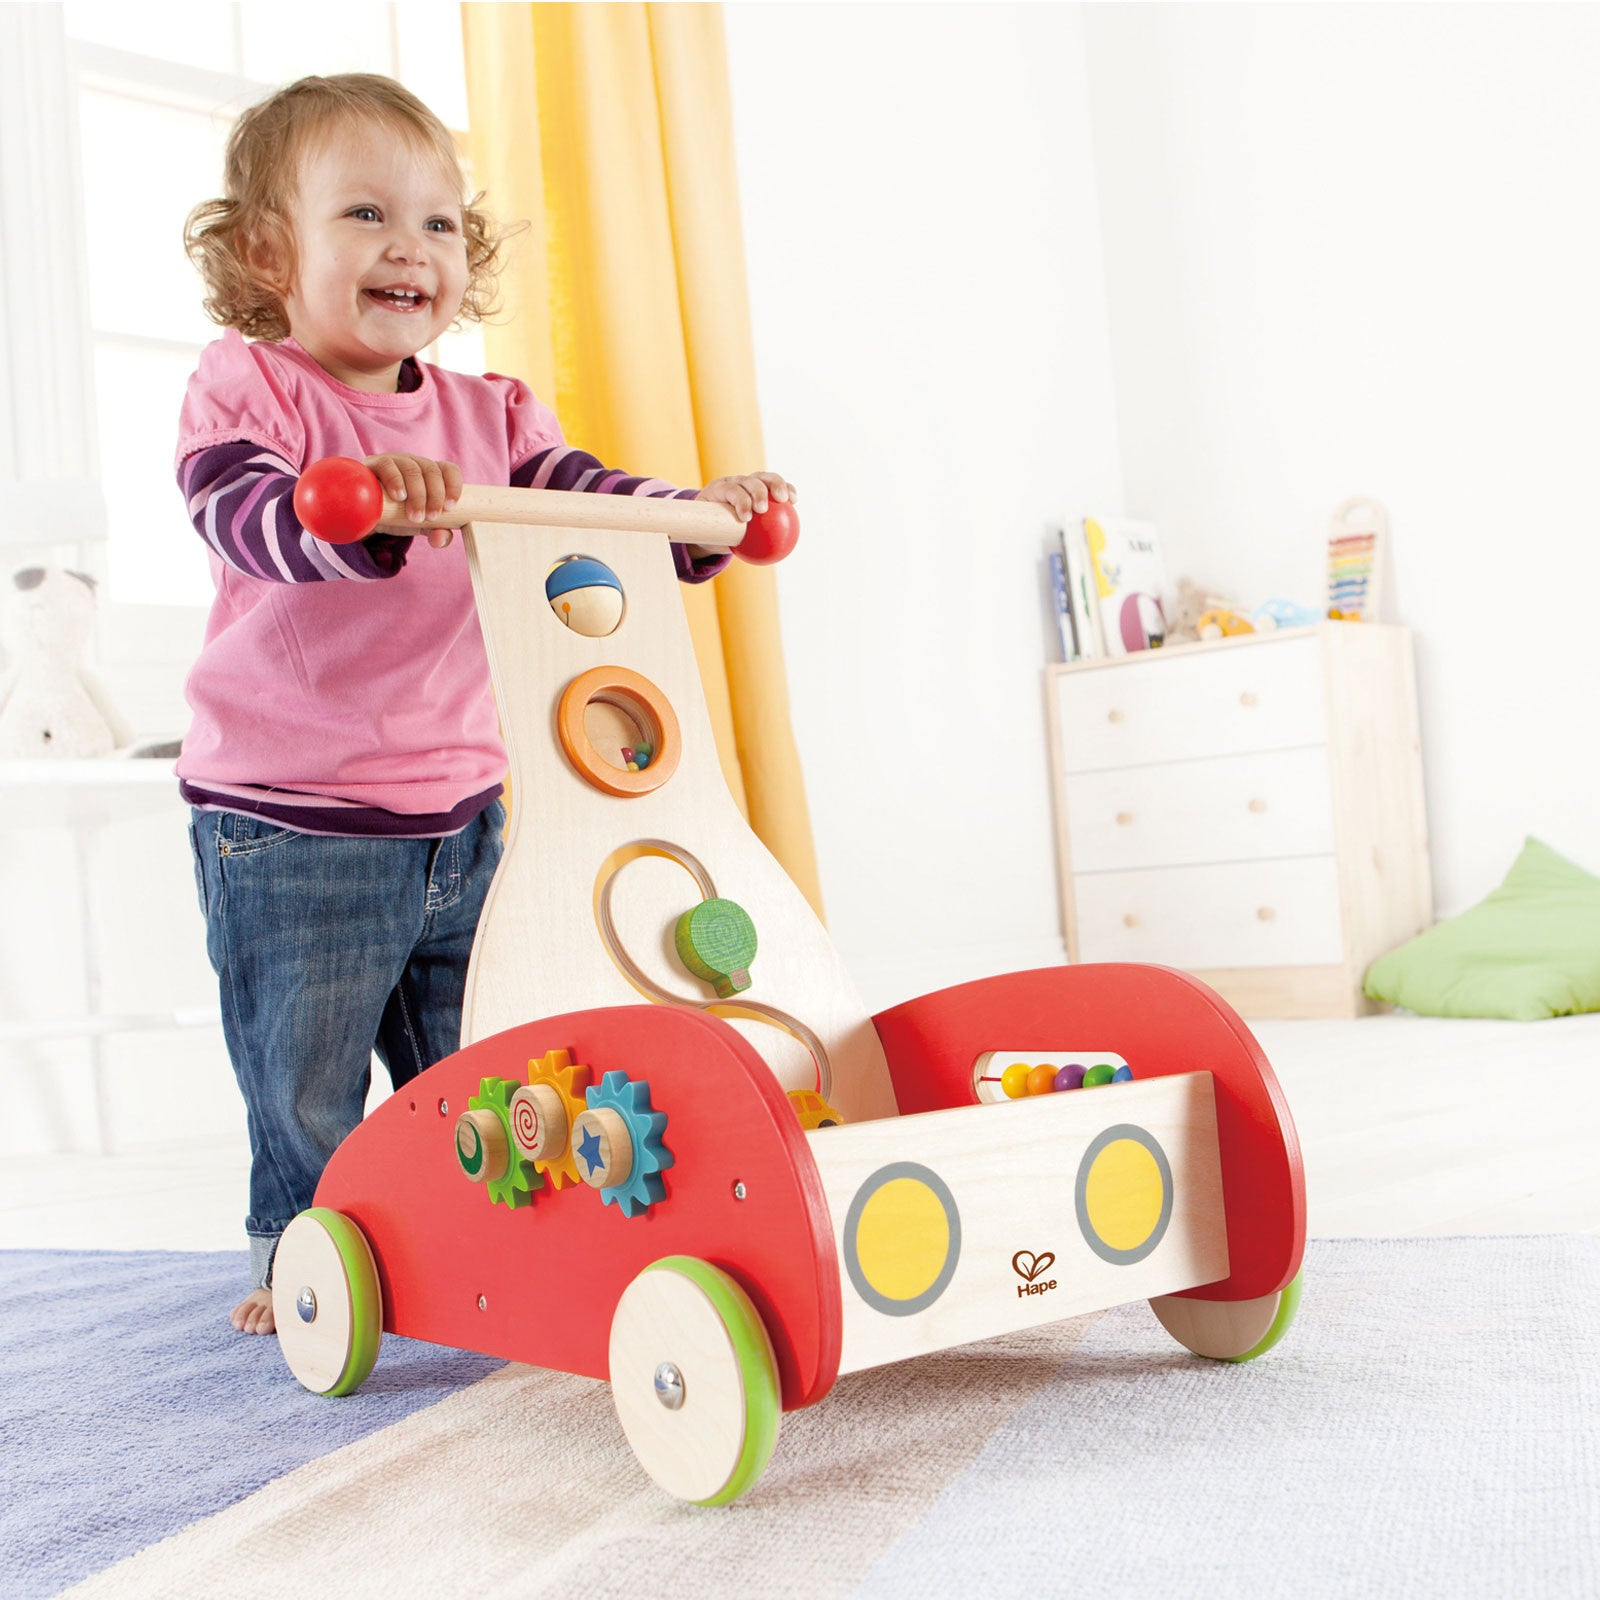 Hape Wonder Walker Baby Walker   - Hape - Little Earth Nest